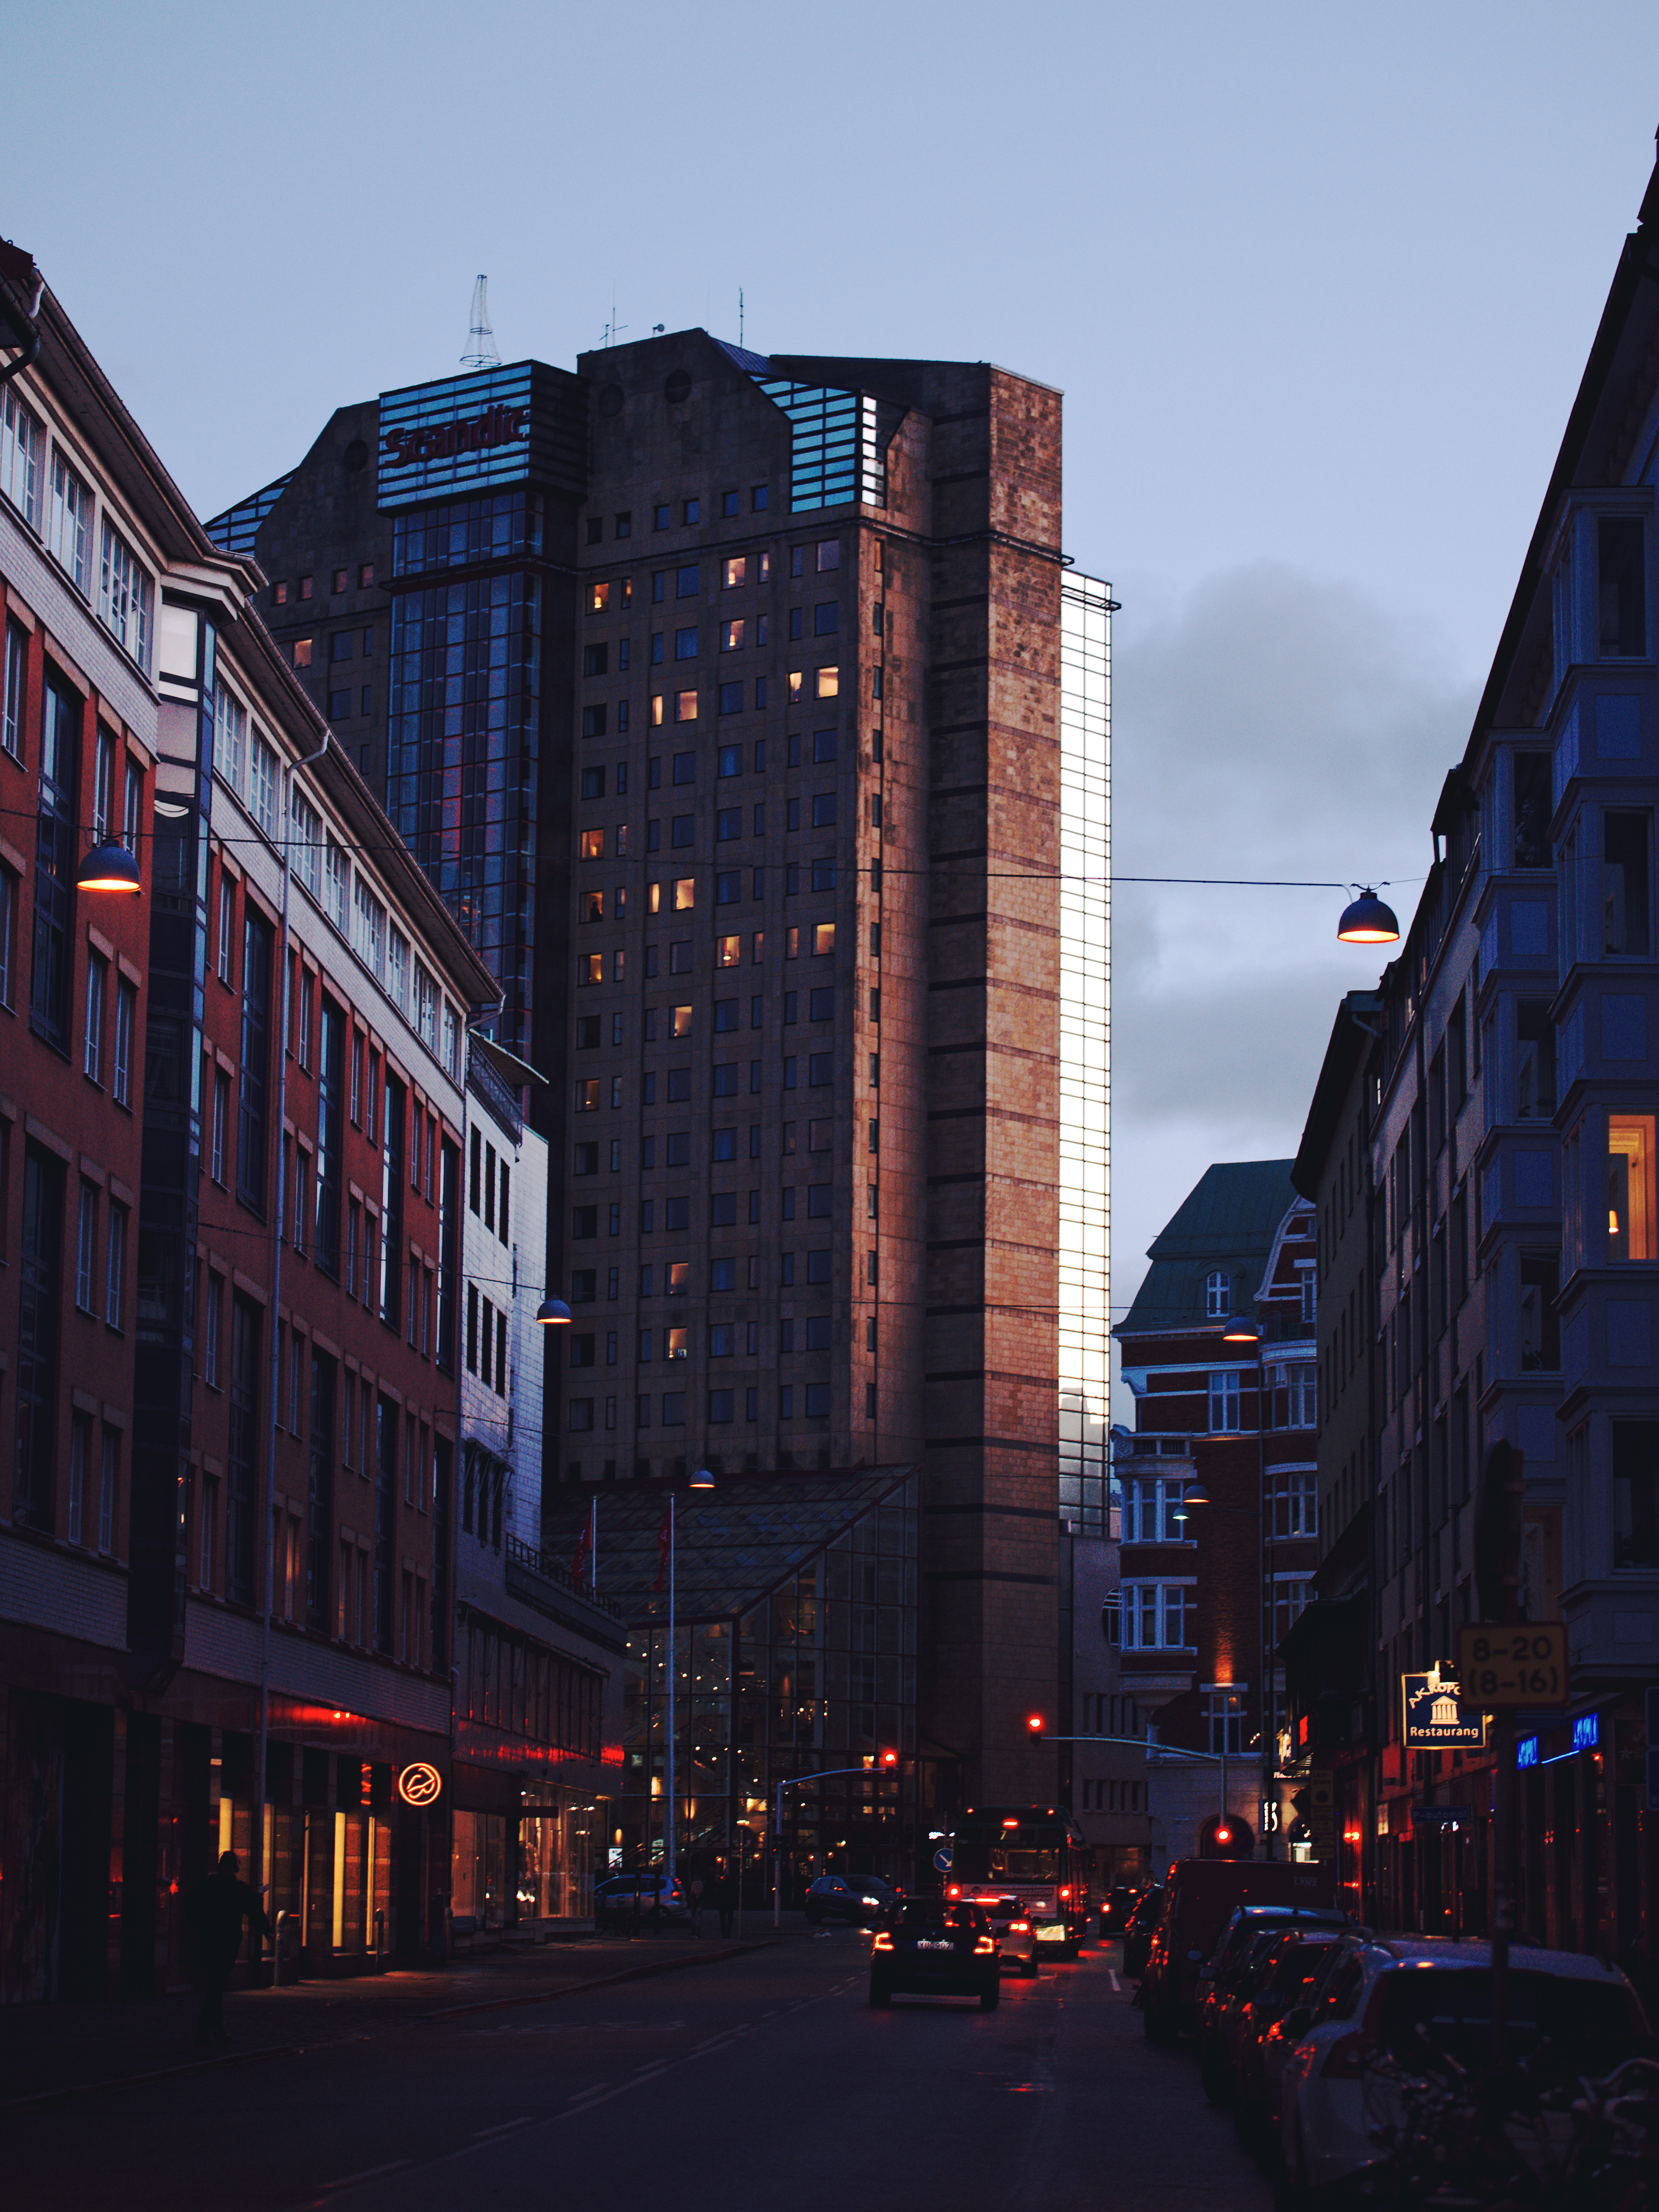 97813 download wallpaper City, Evening, Street, Traffic, Movement, Building, Malmo, Sweden, Architecture, Cities screensavers and pictures for free